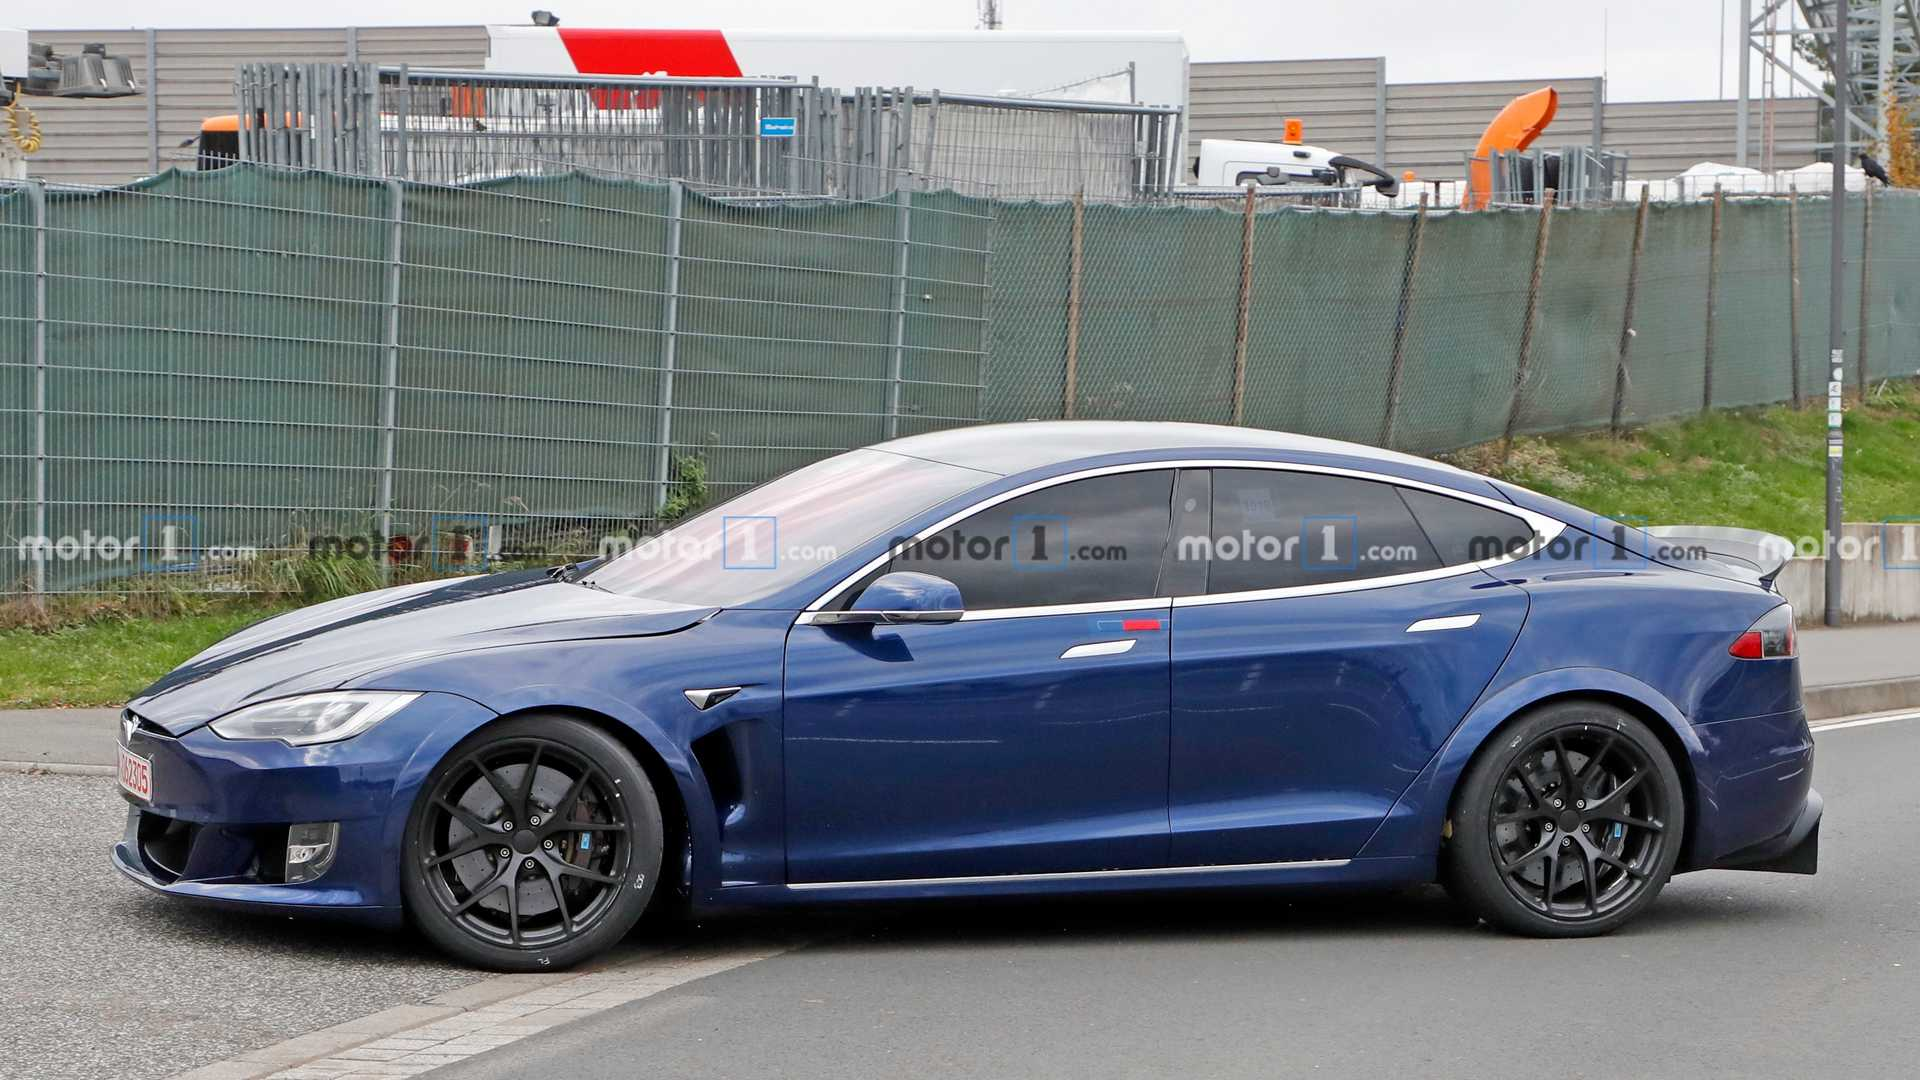 Tesla Model S spied back at the Nurburgring with some changes